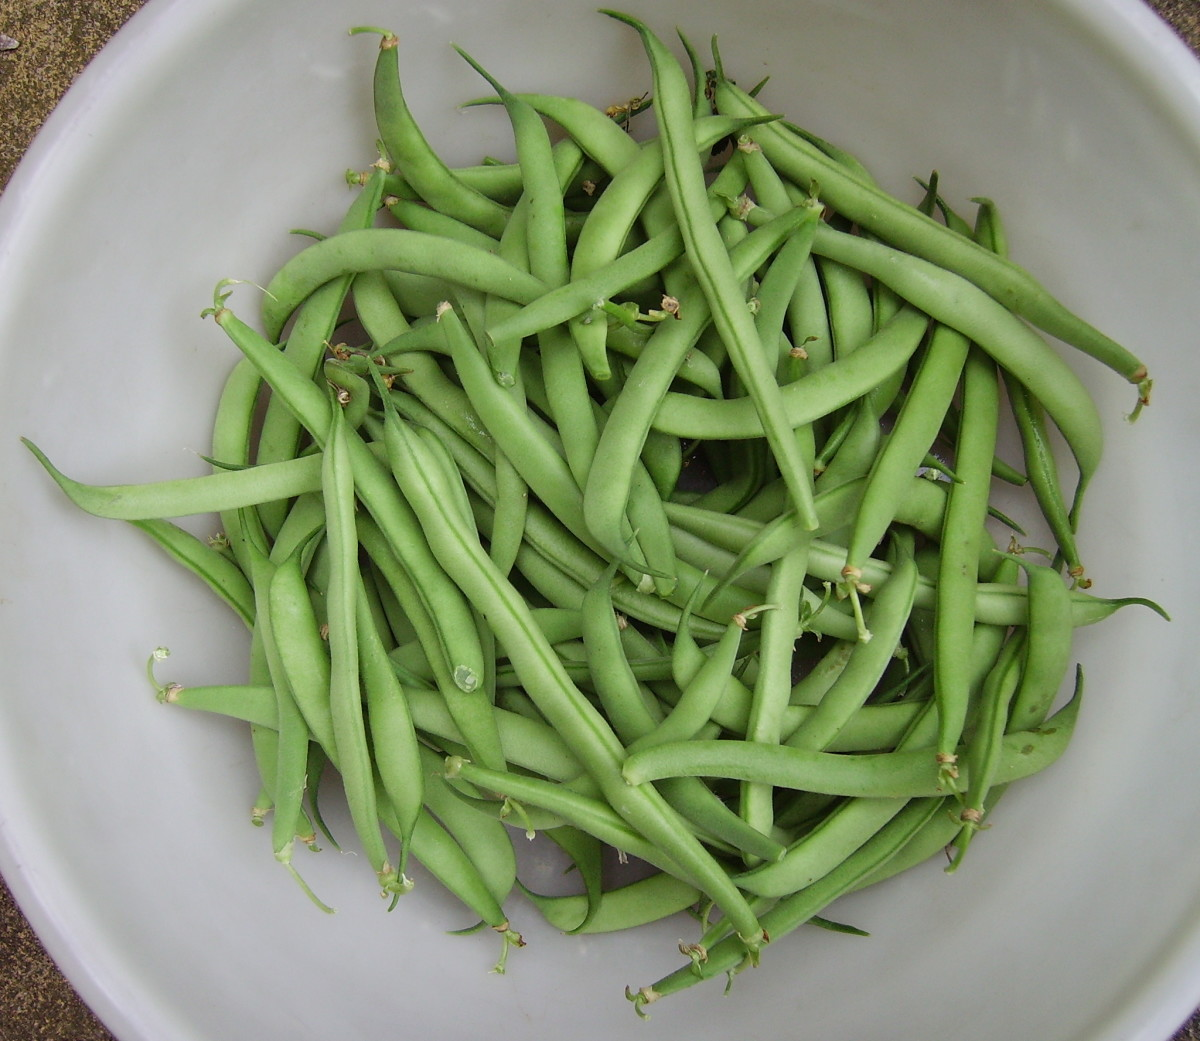 Green beans are a great addition to any meal. Serve hot or cold!